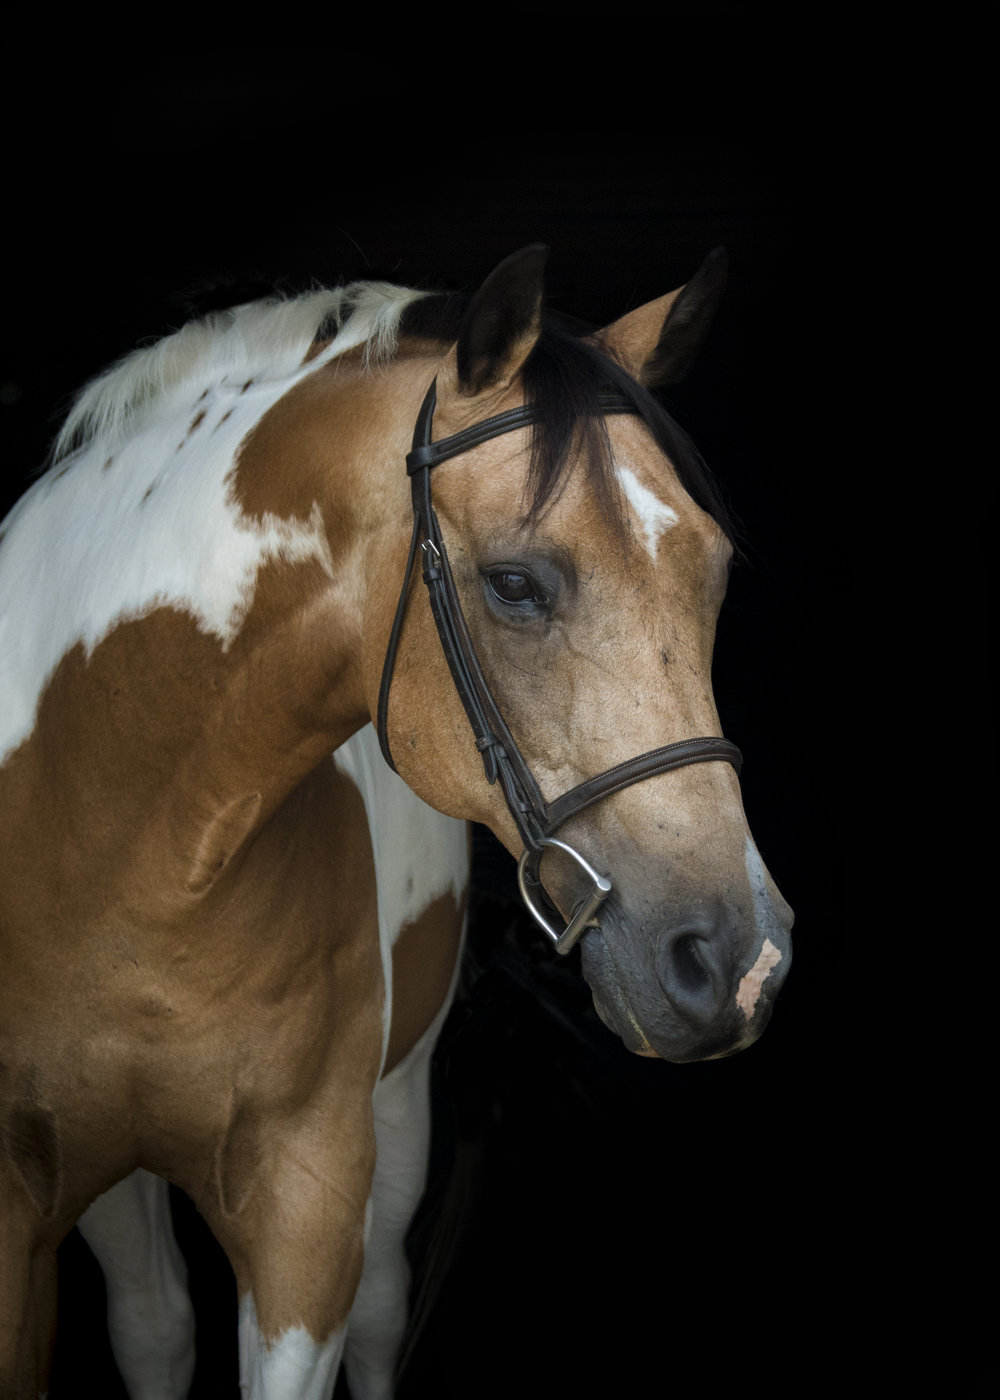 DORITO Birthday: 1993 Breed: Pinto Gelding Height: 15.2 hands Donated by: Andrea Davey